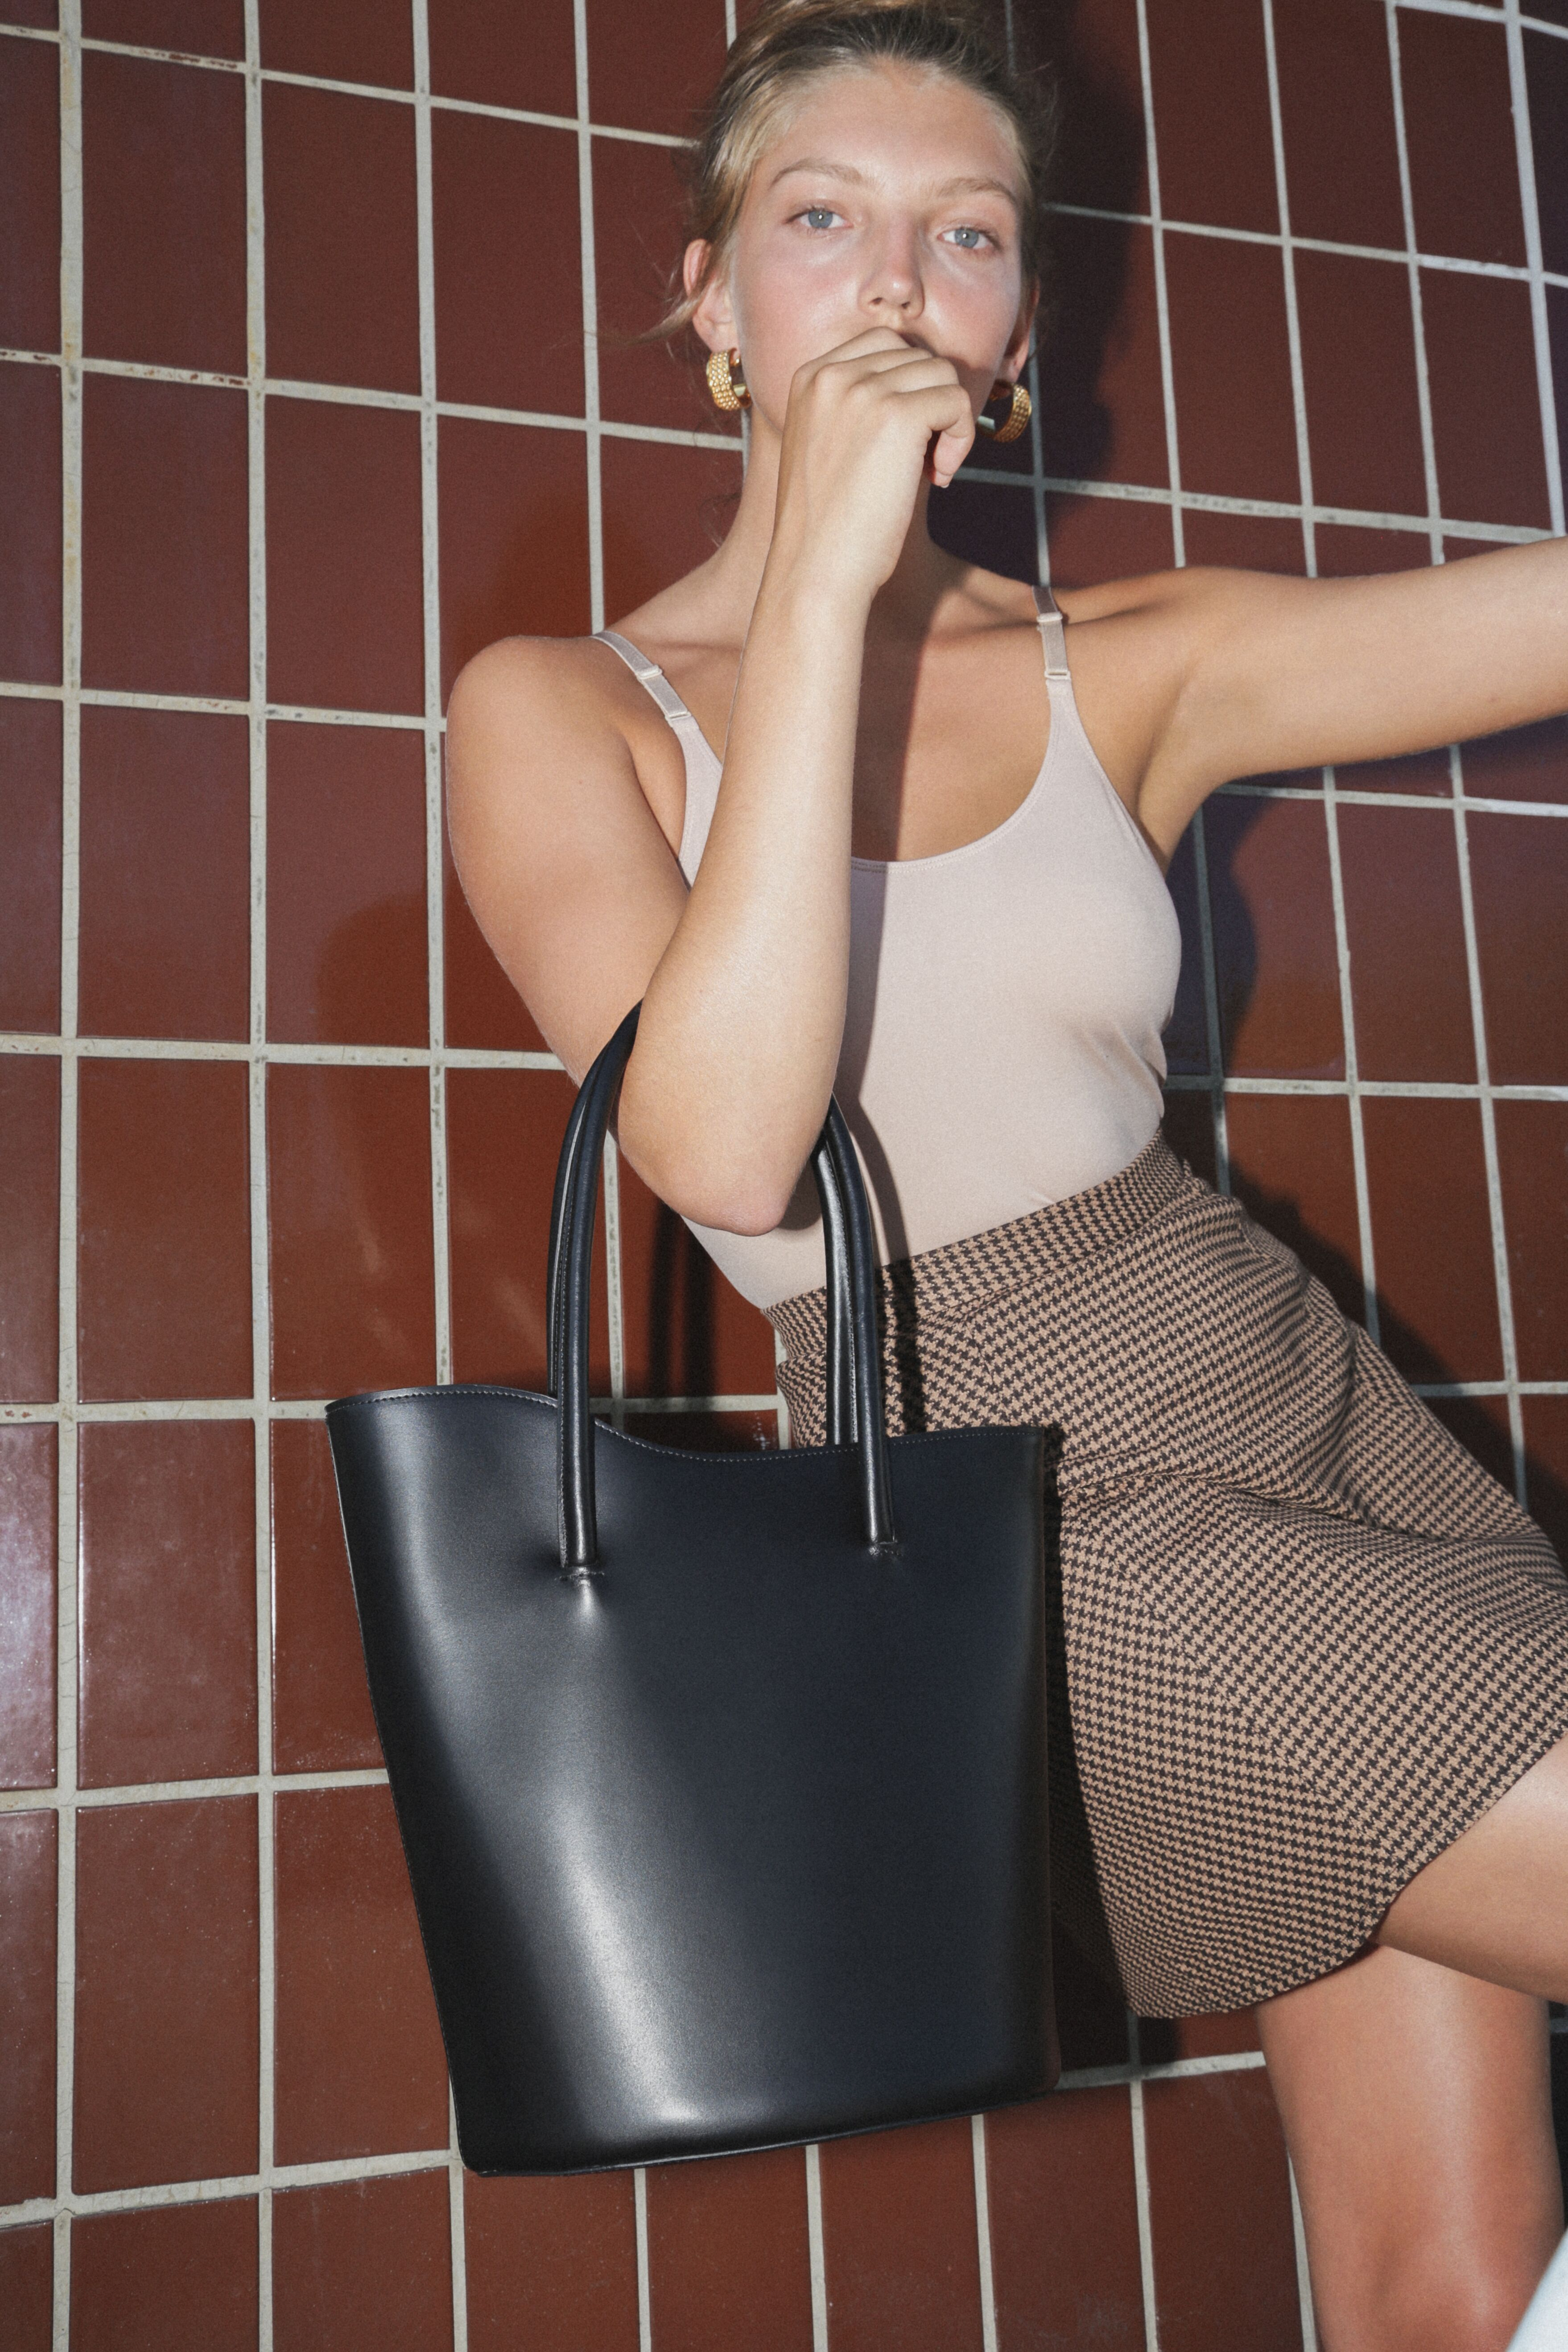 d24820e312 TULIP TOTE SMALL - By Style-All Handbags   Scarpa - The Ultimate  Destination for Shoe Lovers - W19 LITTLE LIFFNER